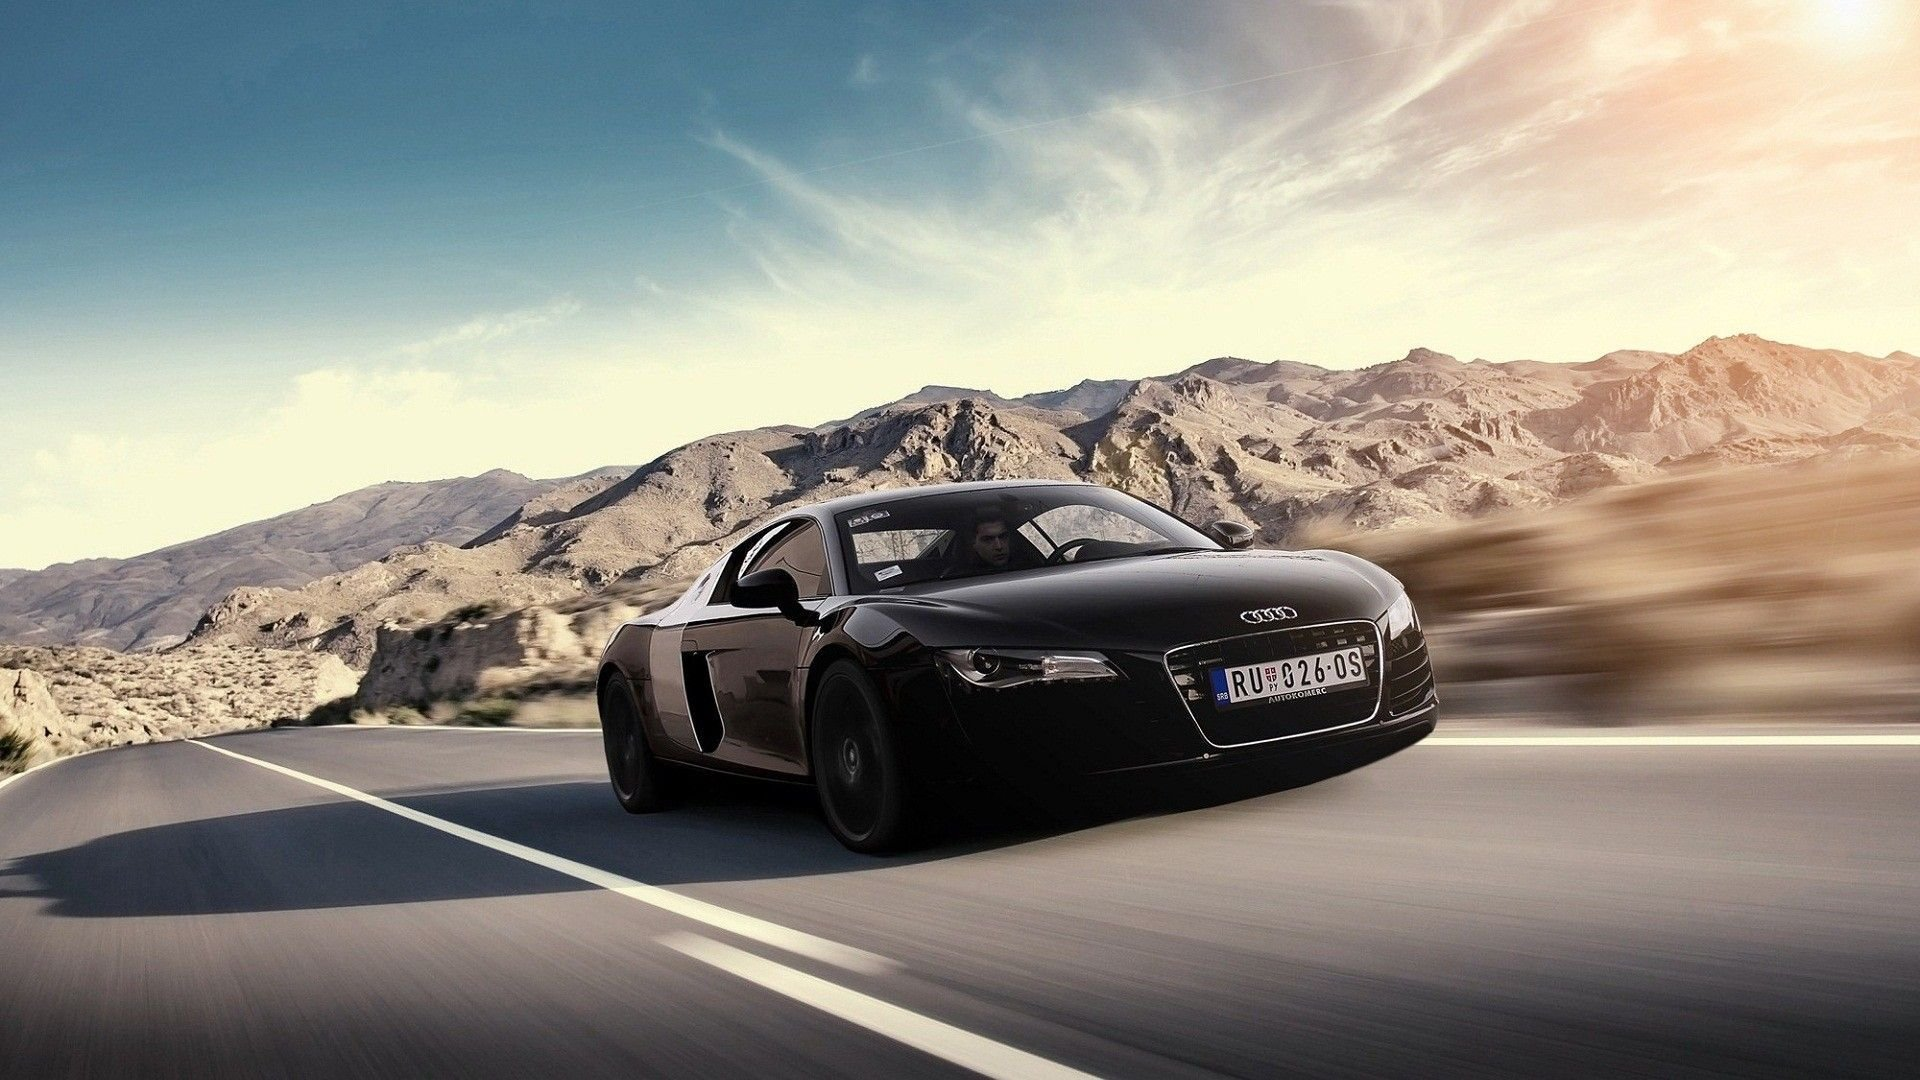 Latest Audi R8 Hd Wallpaper Audi Wallpapers Pinterest Free Download